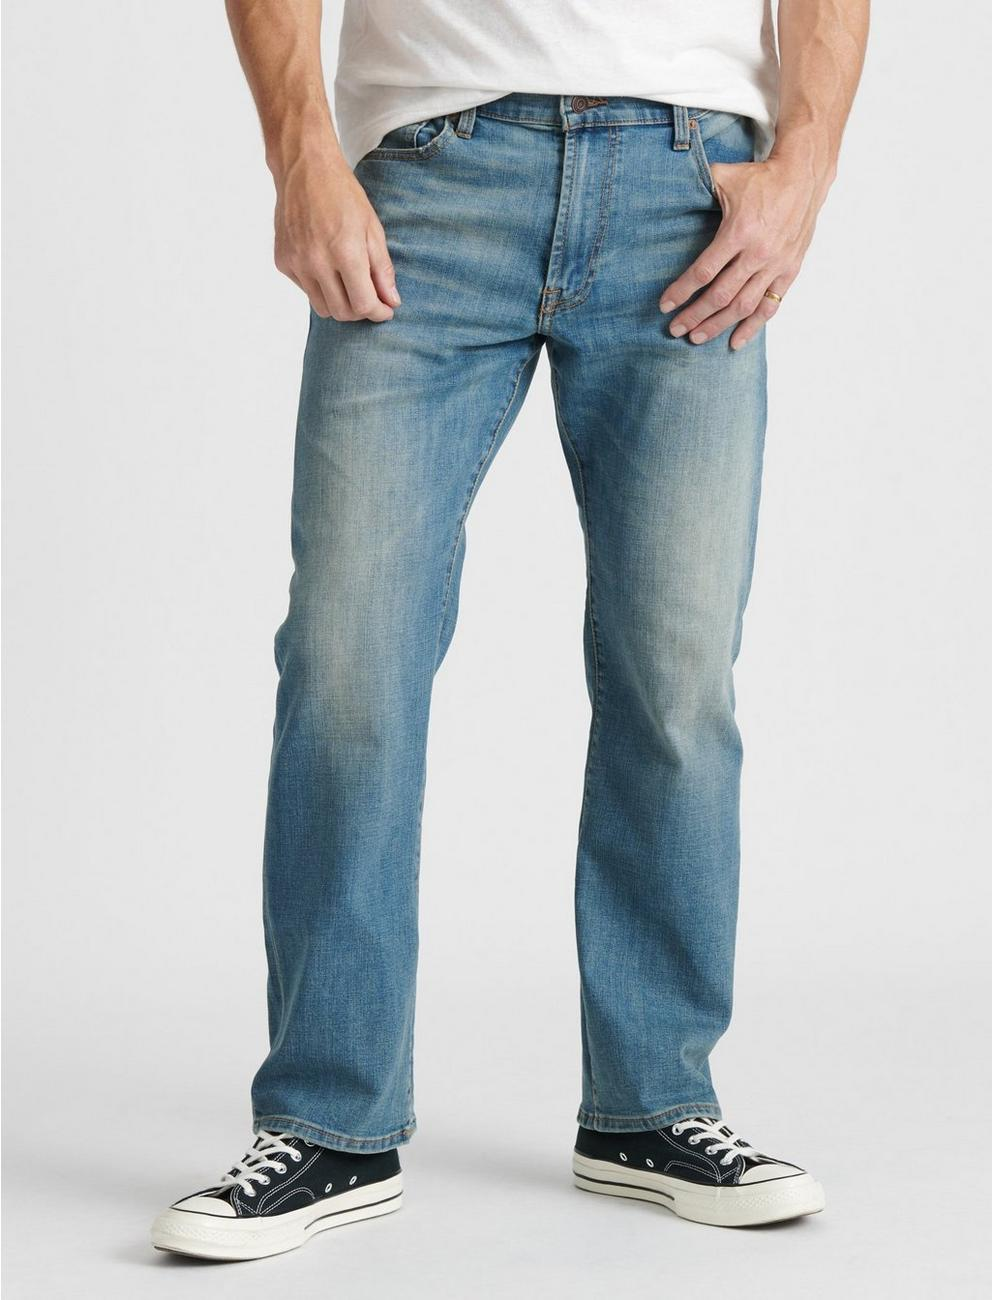 181 RELAXED STRAIGHT JEAN, ANTON